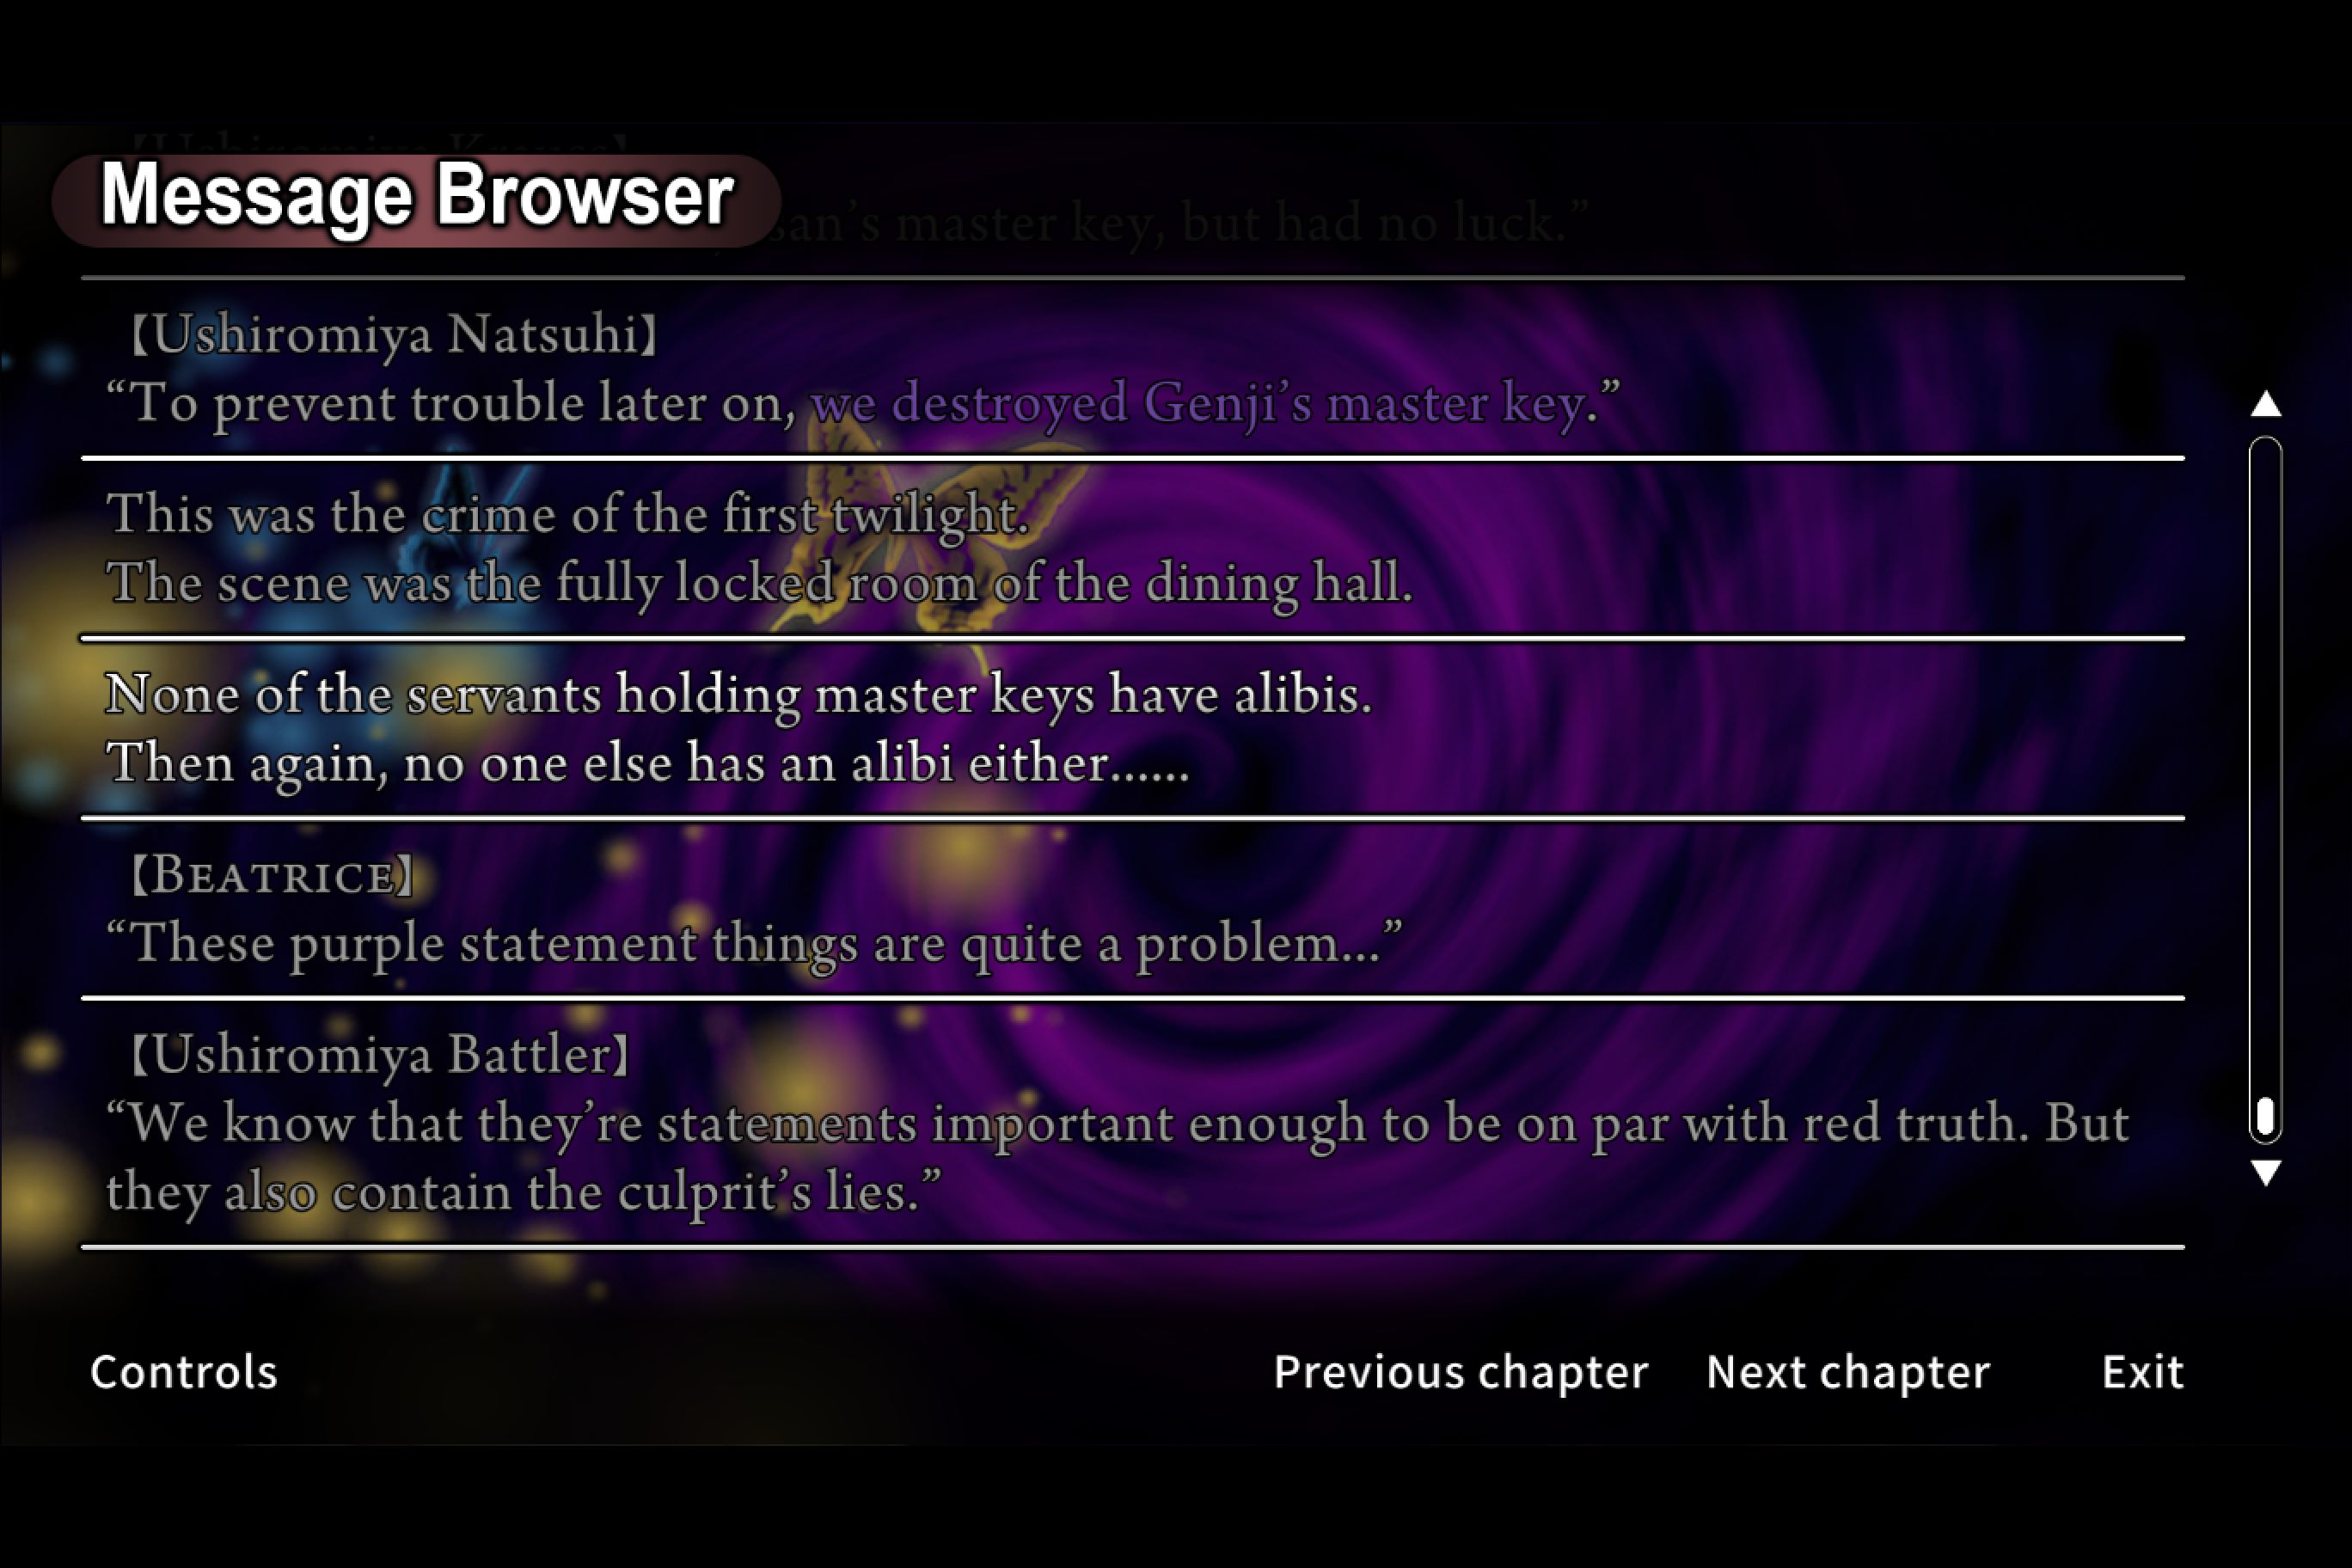 Umineko no Naku Koro ni Chiru ~Nocturne of Truth and Illusions~ (8.2a) 6_1_2020 11_30_16 PM.png